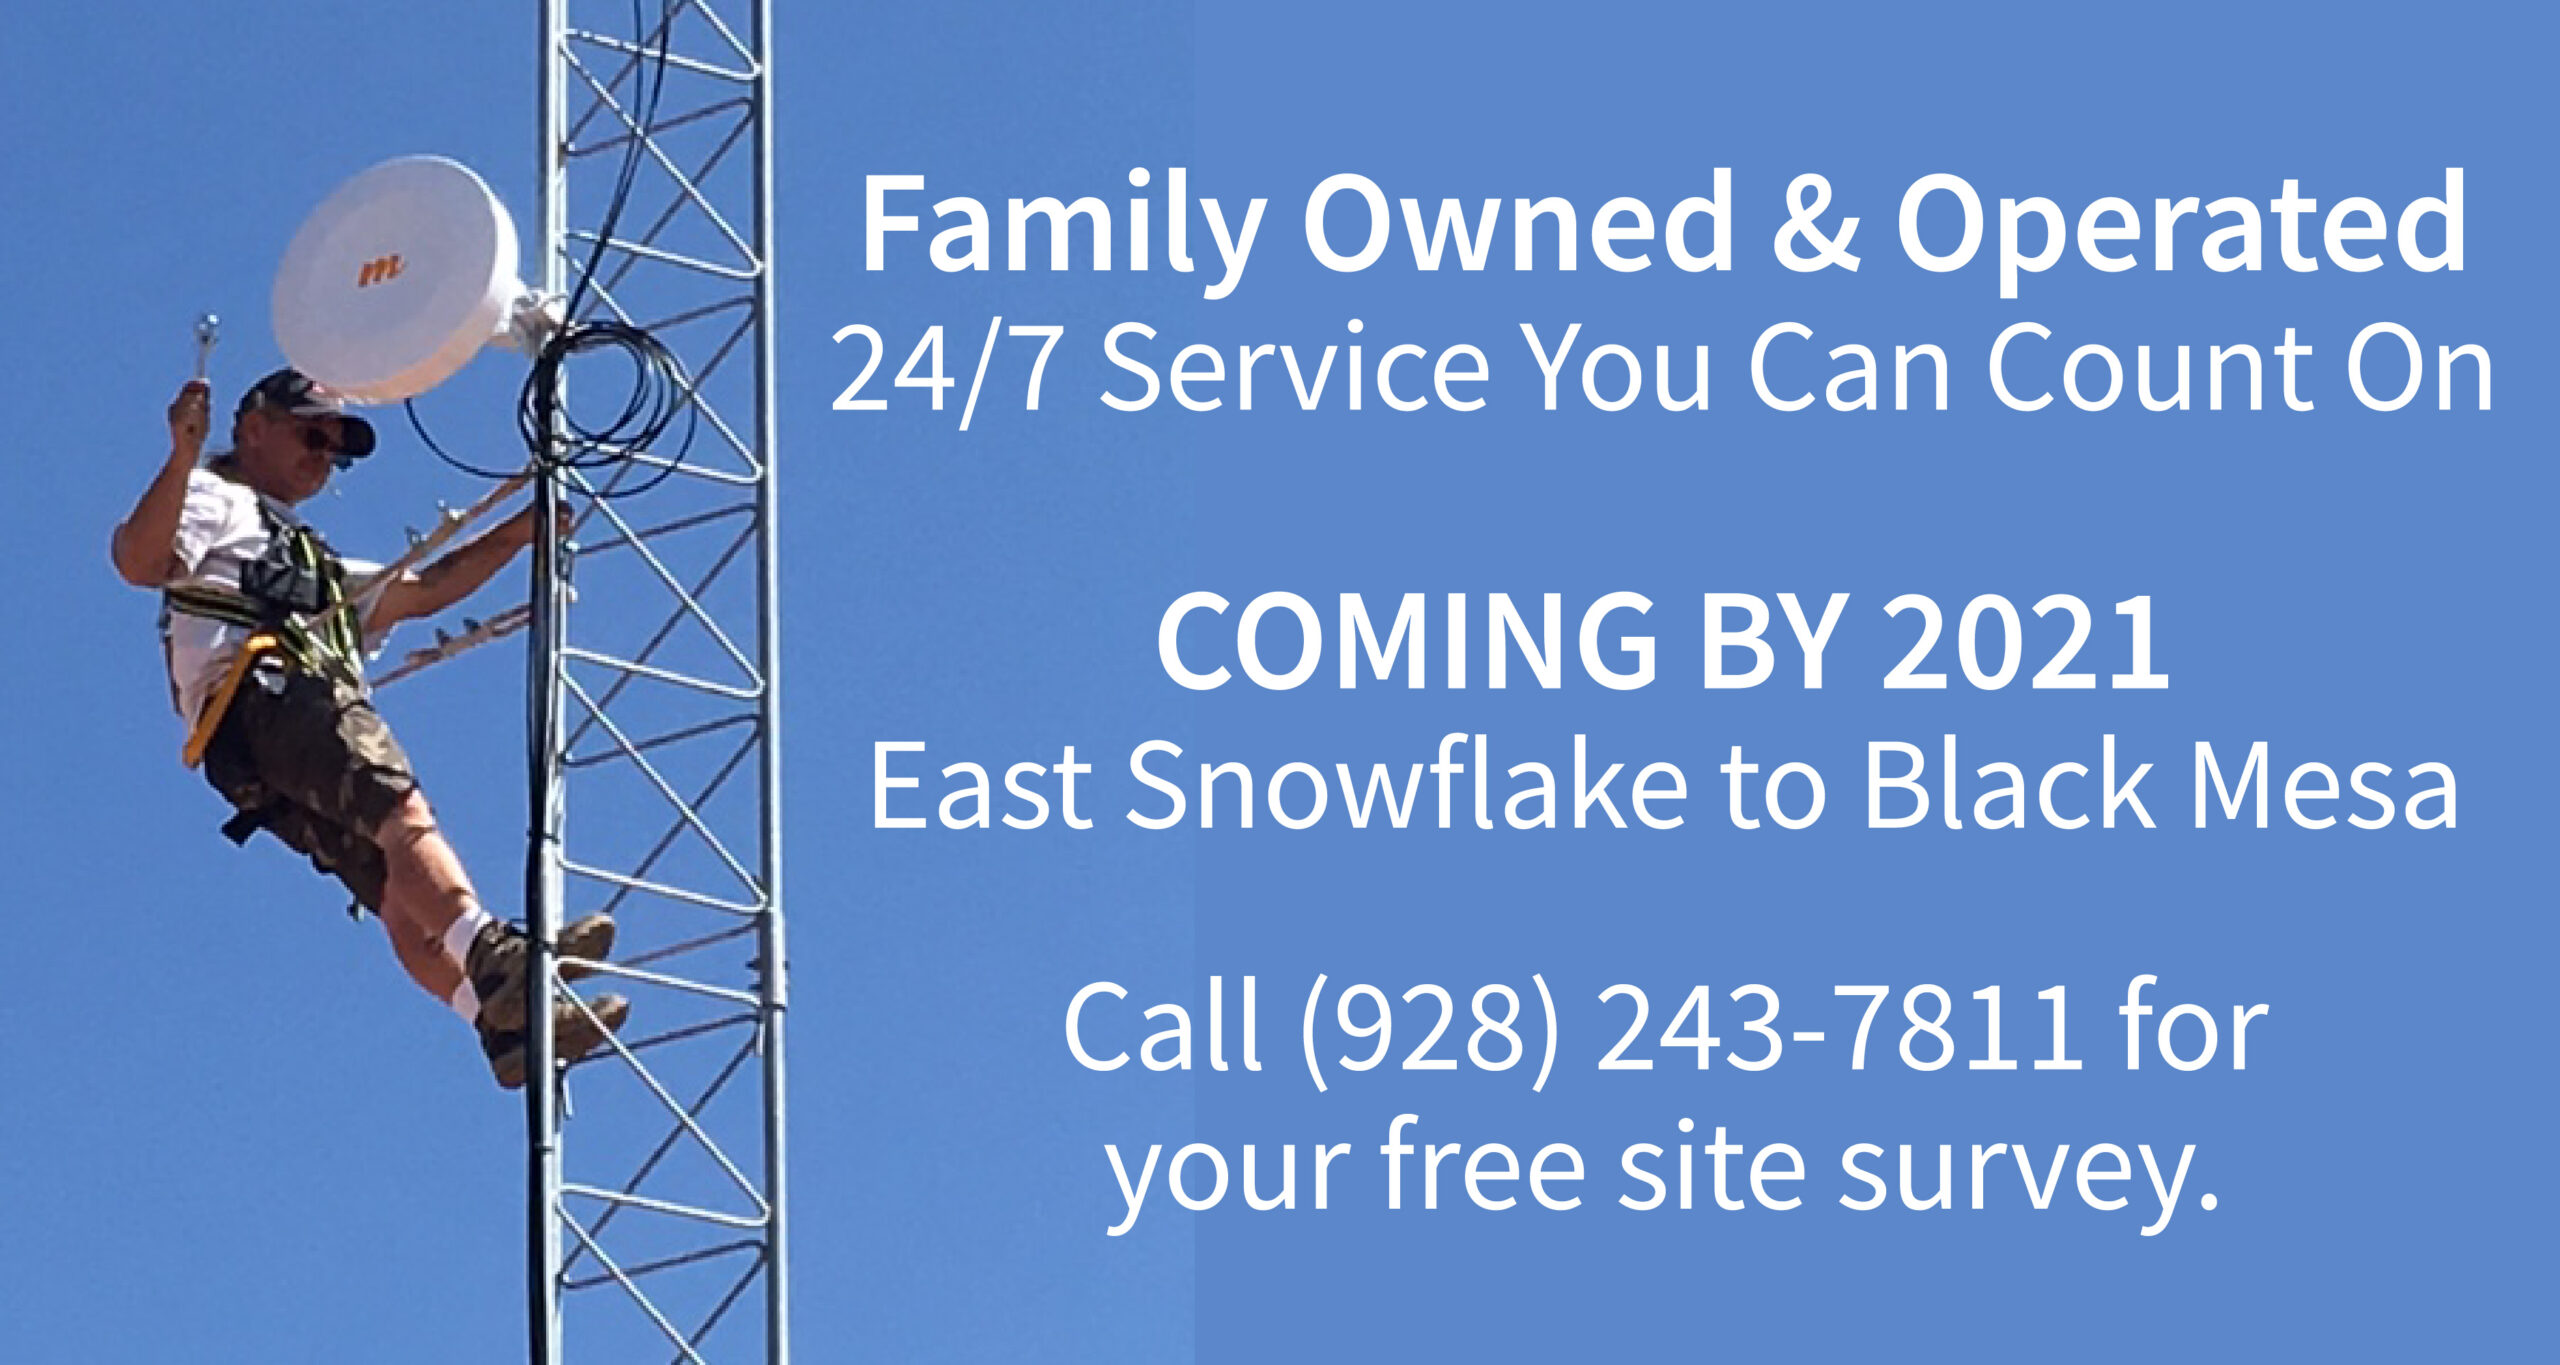 Family-Owned-Operated-Expanded-Areas